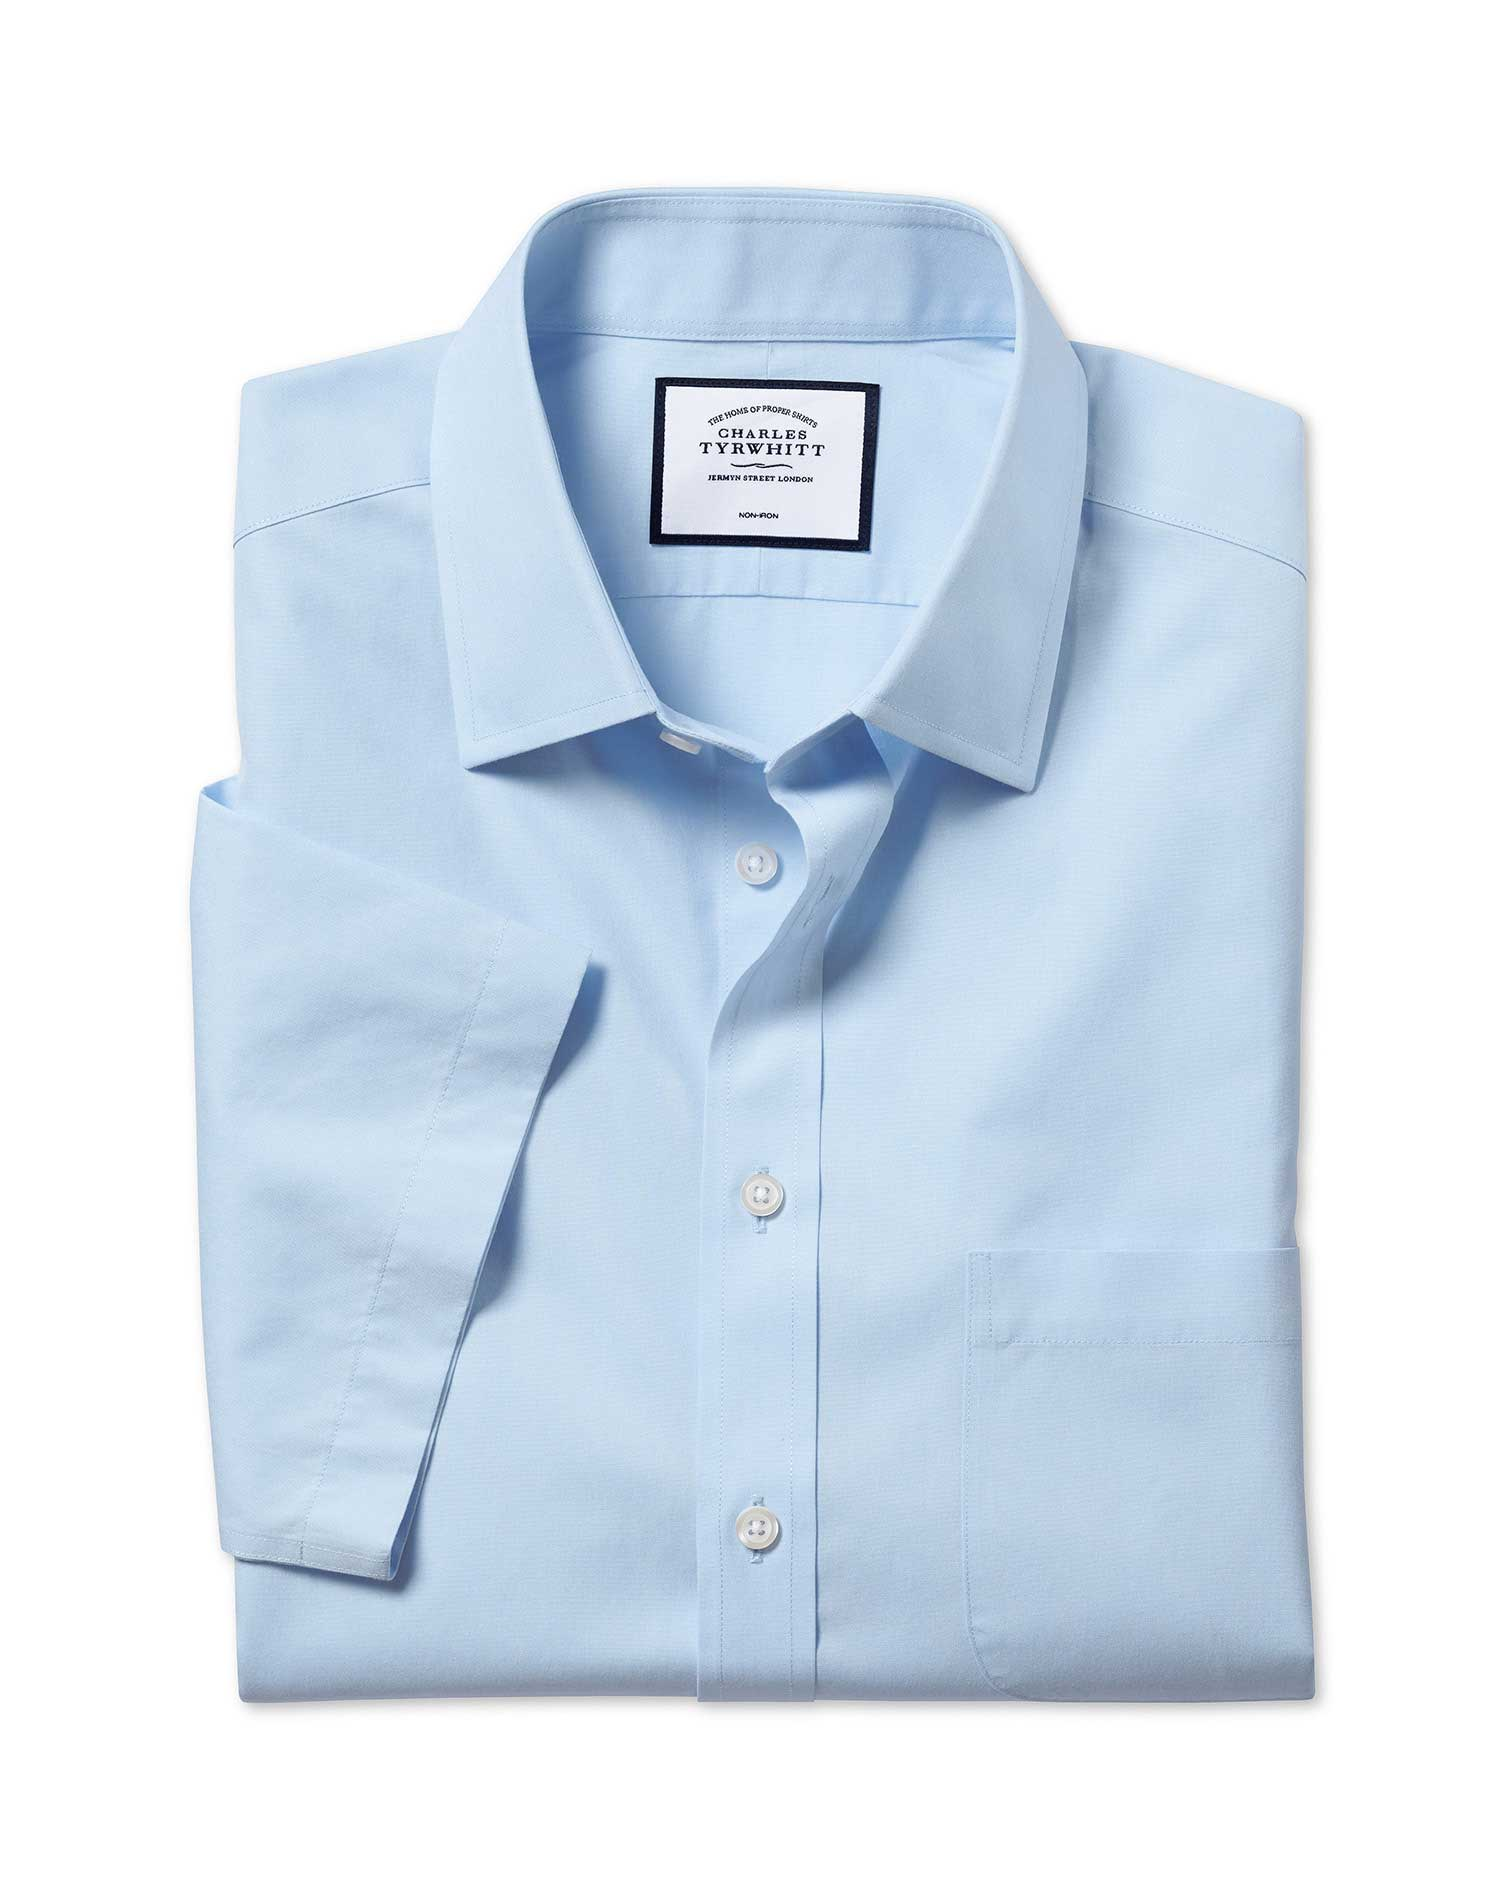 Classic Fit Non-Iron Natural Cool Short Sleeve Sky Blue Cotton Formal Shirt Size 16/Short by Charles